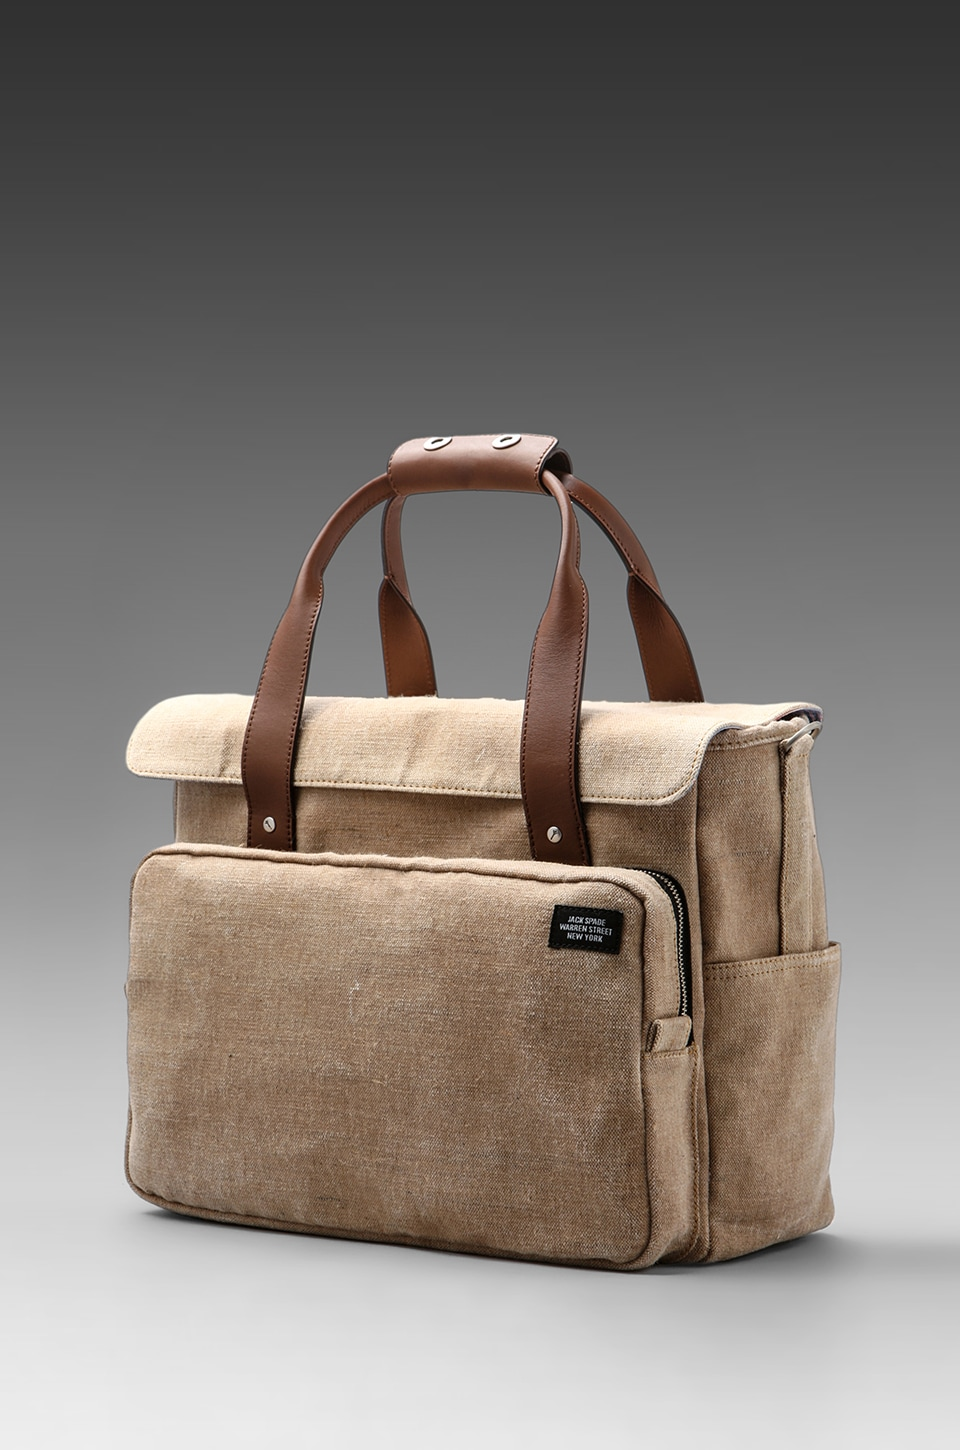 Jack Spade Stone Burlap Survey Bag in Natural/Blue & White